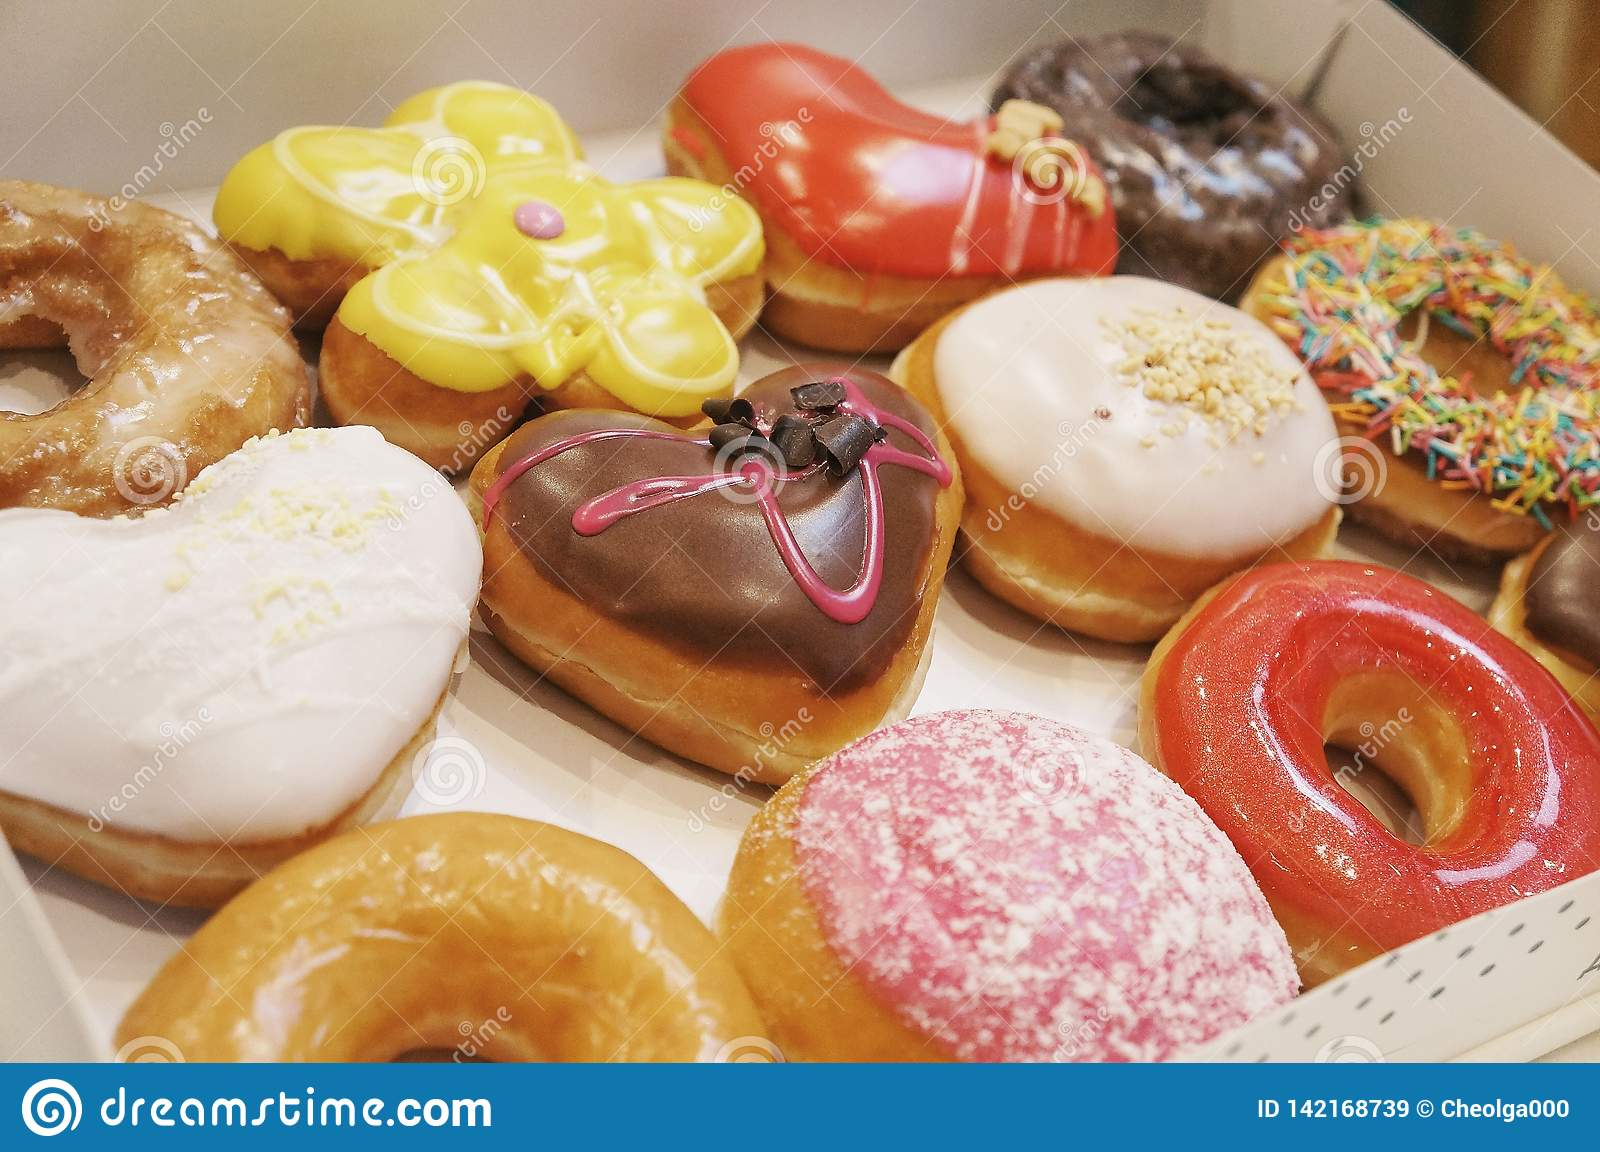 Donuts in the box